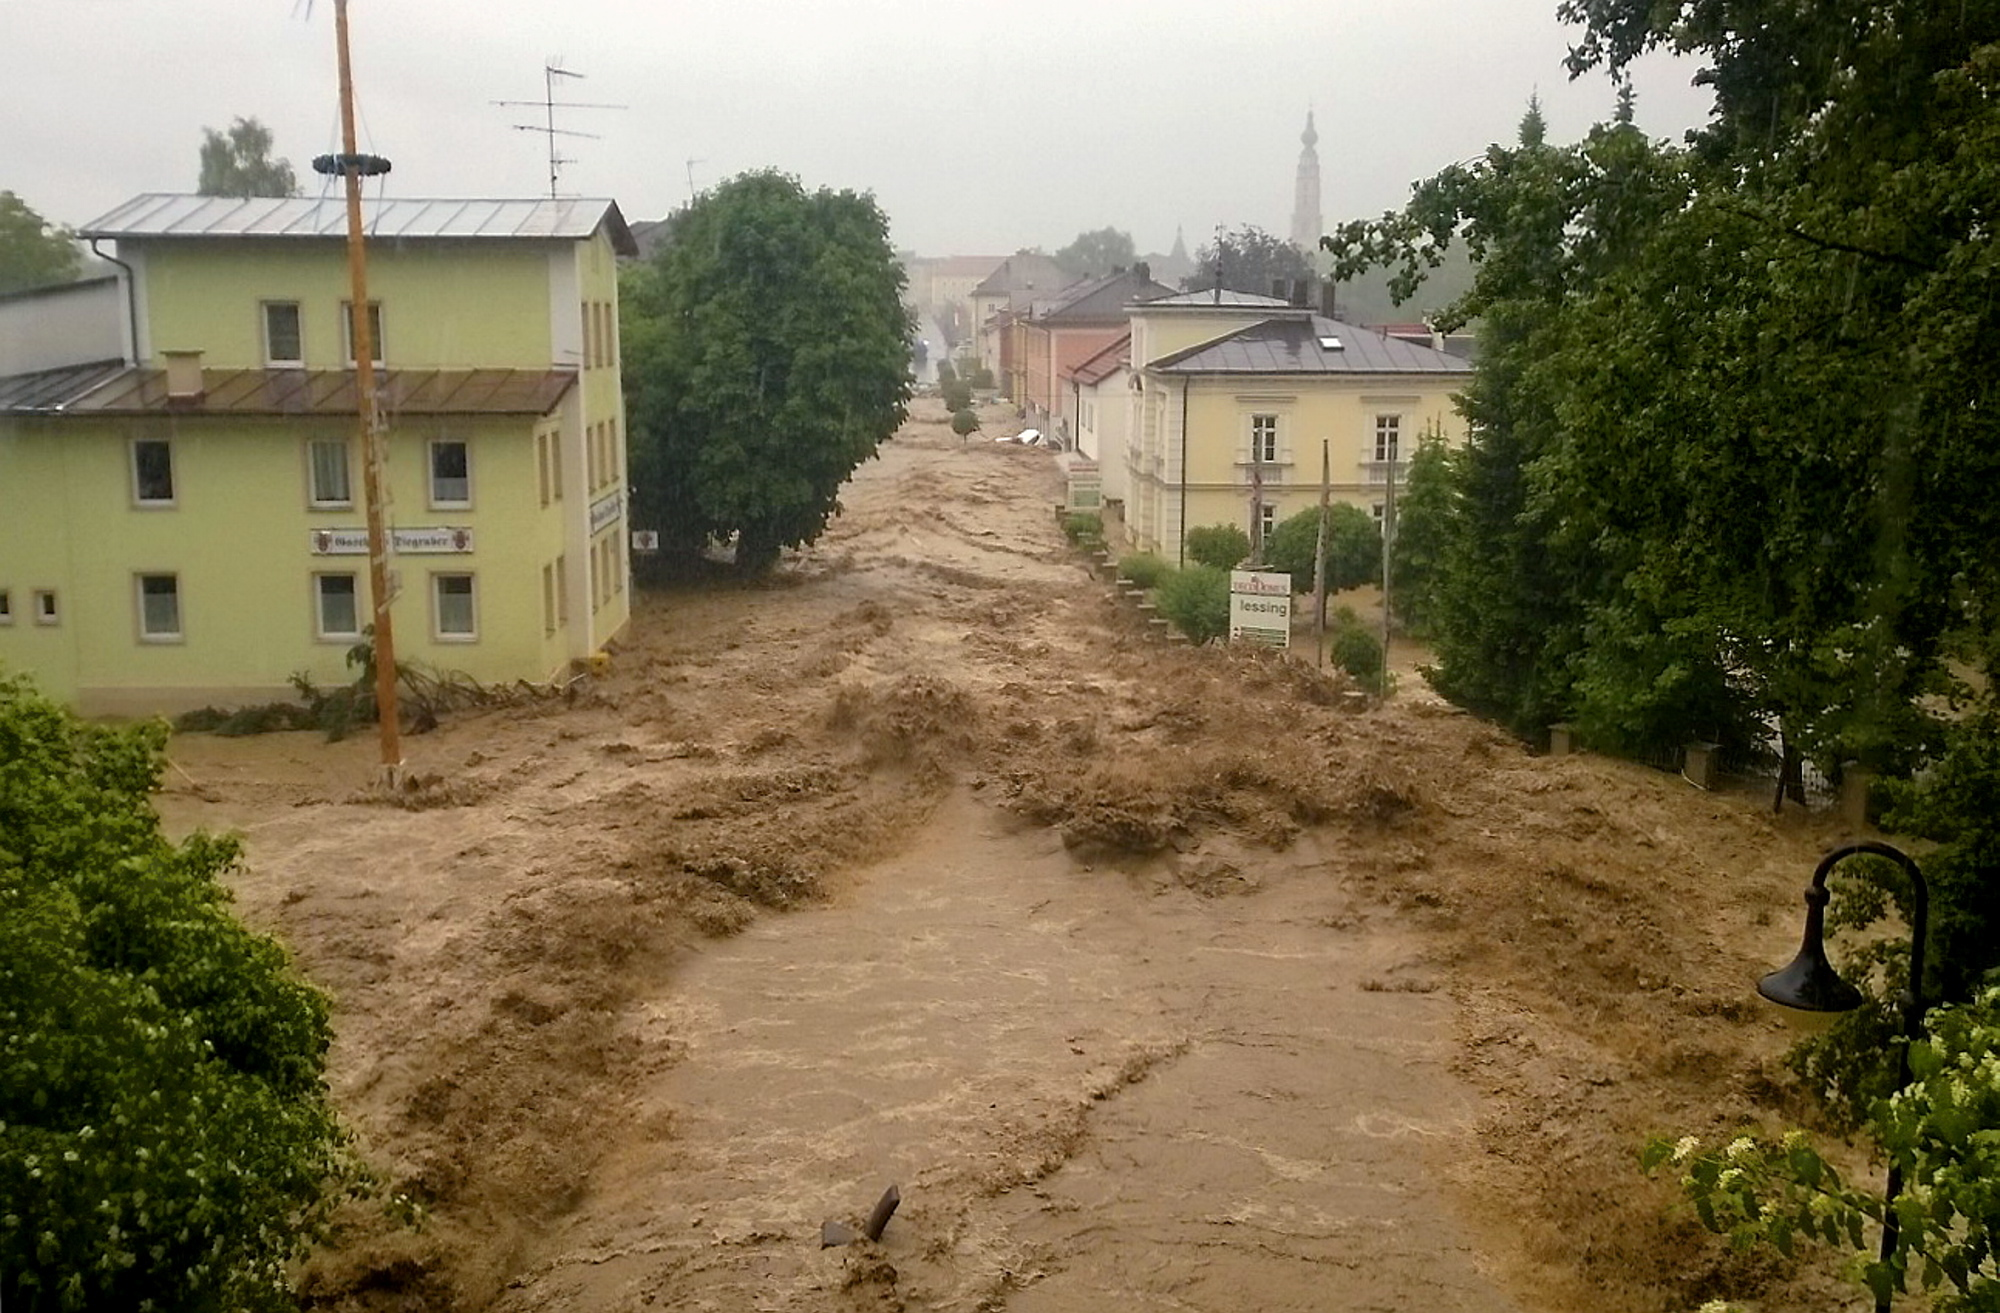 From late May until mid-June, a persistent large-scale weather pattern with thunderstorms produced intense precipitation which caused both local flash floods and widespread flooding in central Europe. The floods struck many places with no warning.